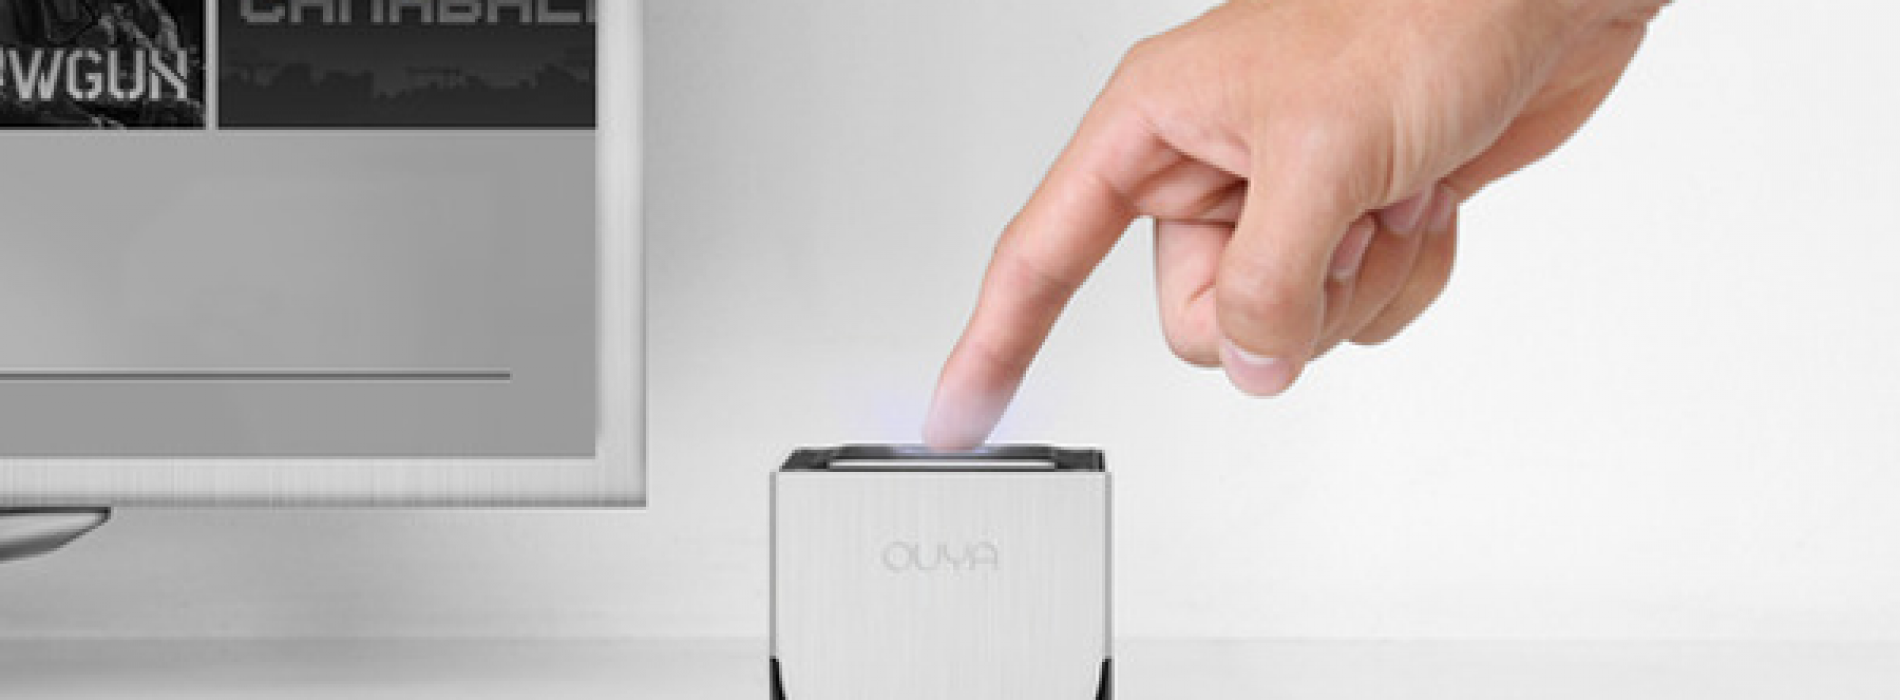 An update on OUYA's exciting Android-based console project: Success!